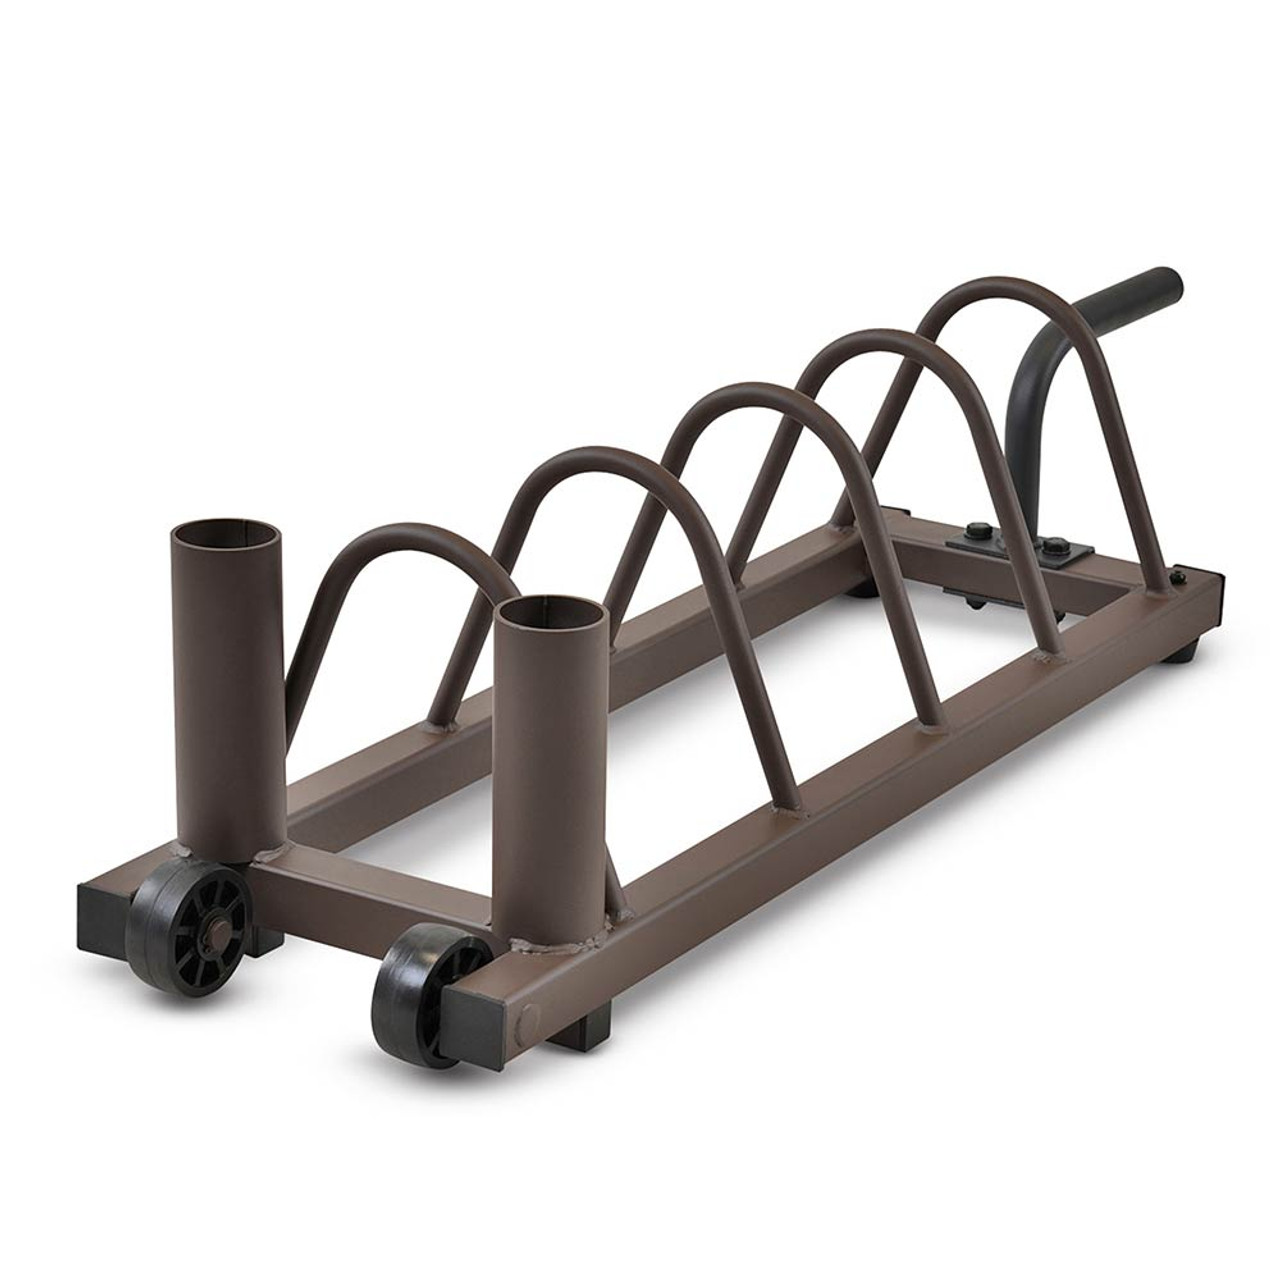 Horizontal Plate Rack | SteelBody STB-0130 Durable Heavy Duty Weight Storage